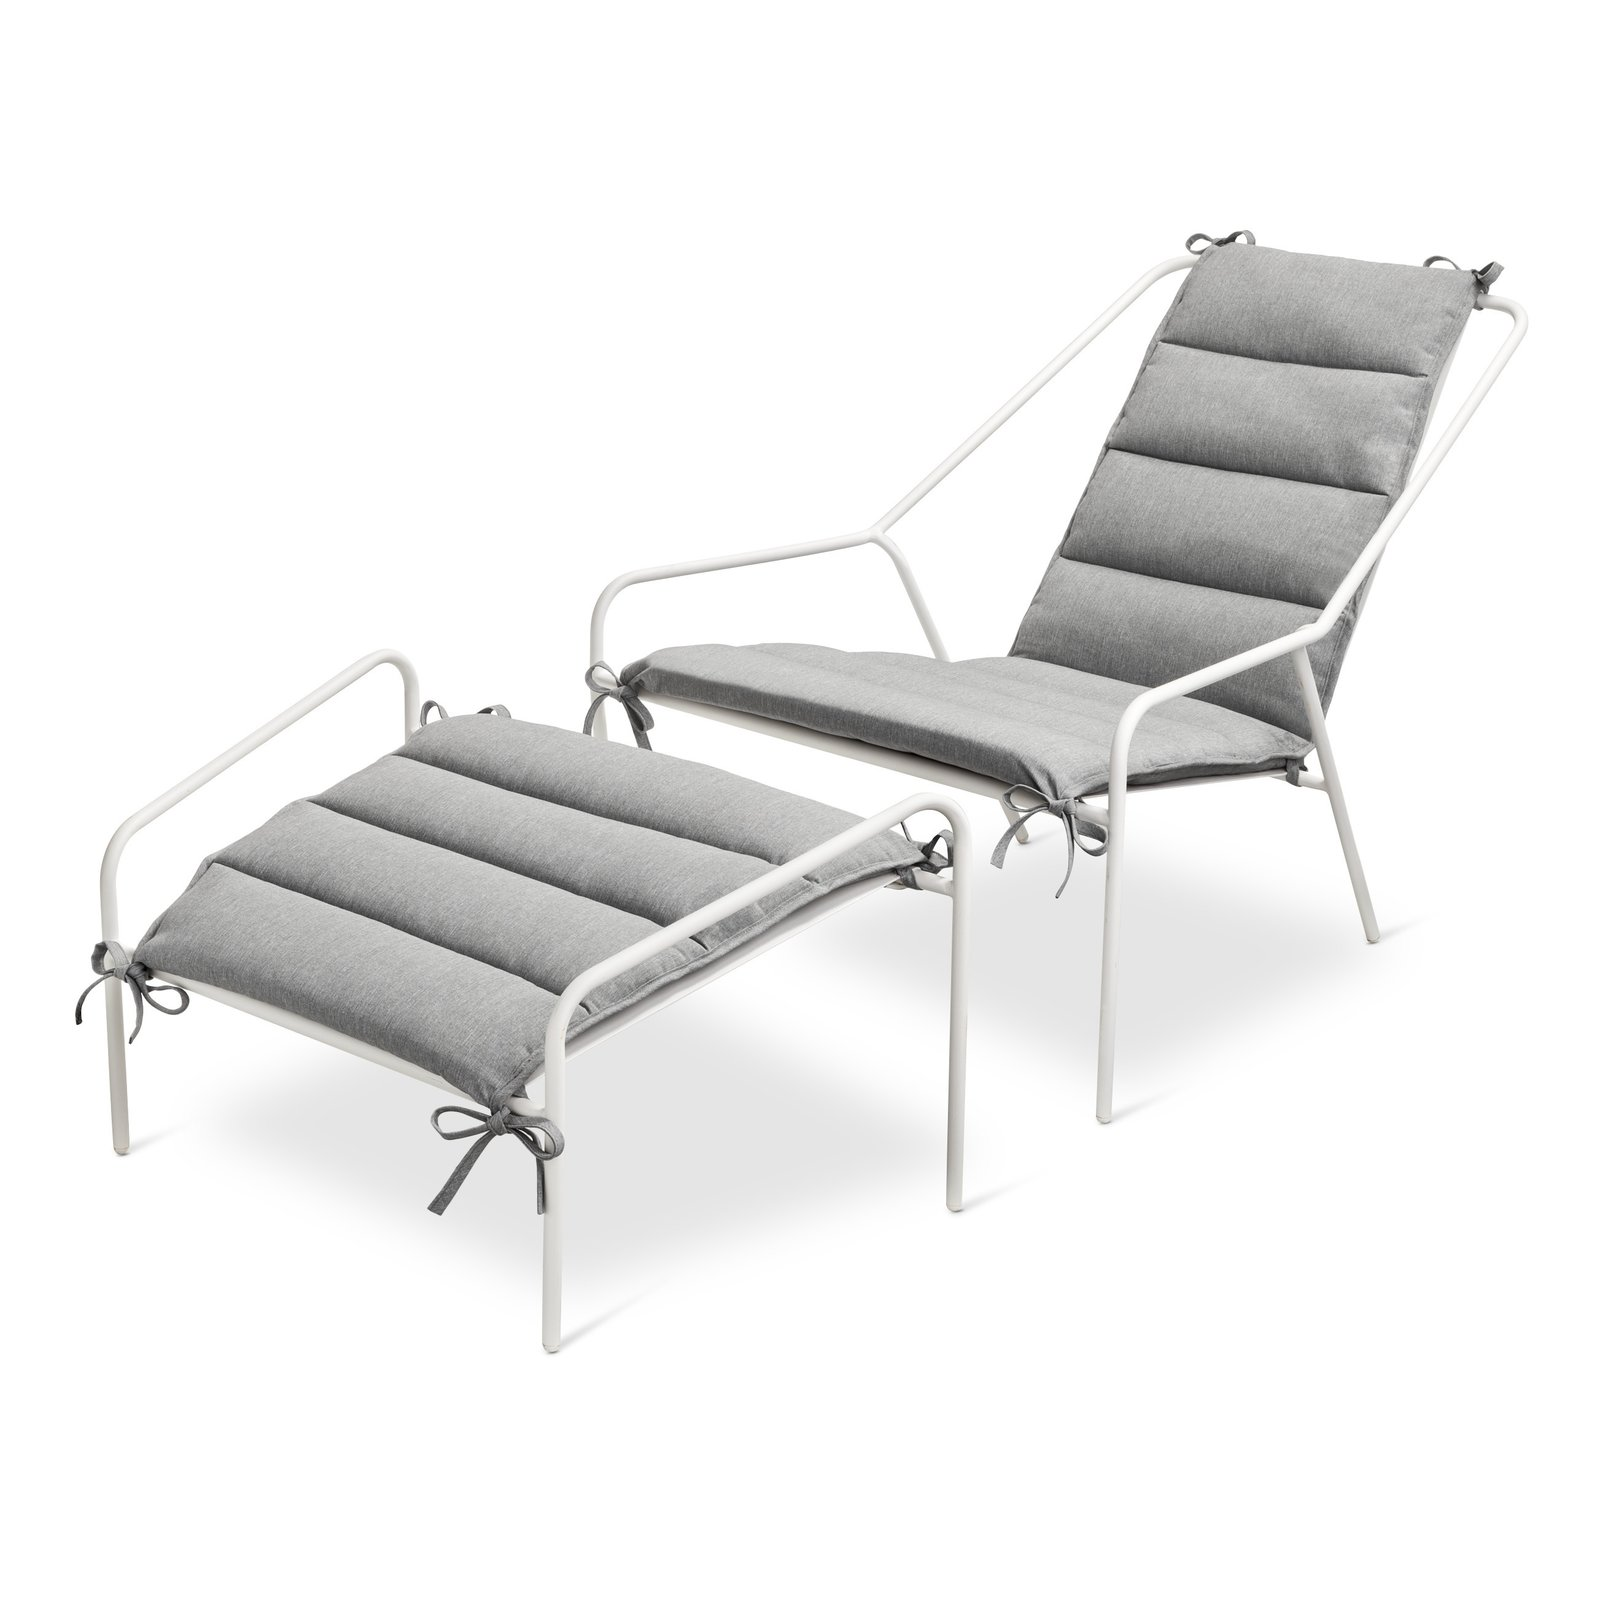 Posture Chair and Ottoman Set, $269.99, available in gray, orange, or white; Cushion, $79.99, available in gray or navy; designed by Chris Deam and Nick Dine for Modern by Dwell Magazine for Target   Photo 11 of 17 in Modern by Dwell Magazine: Outdoor Collection